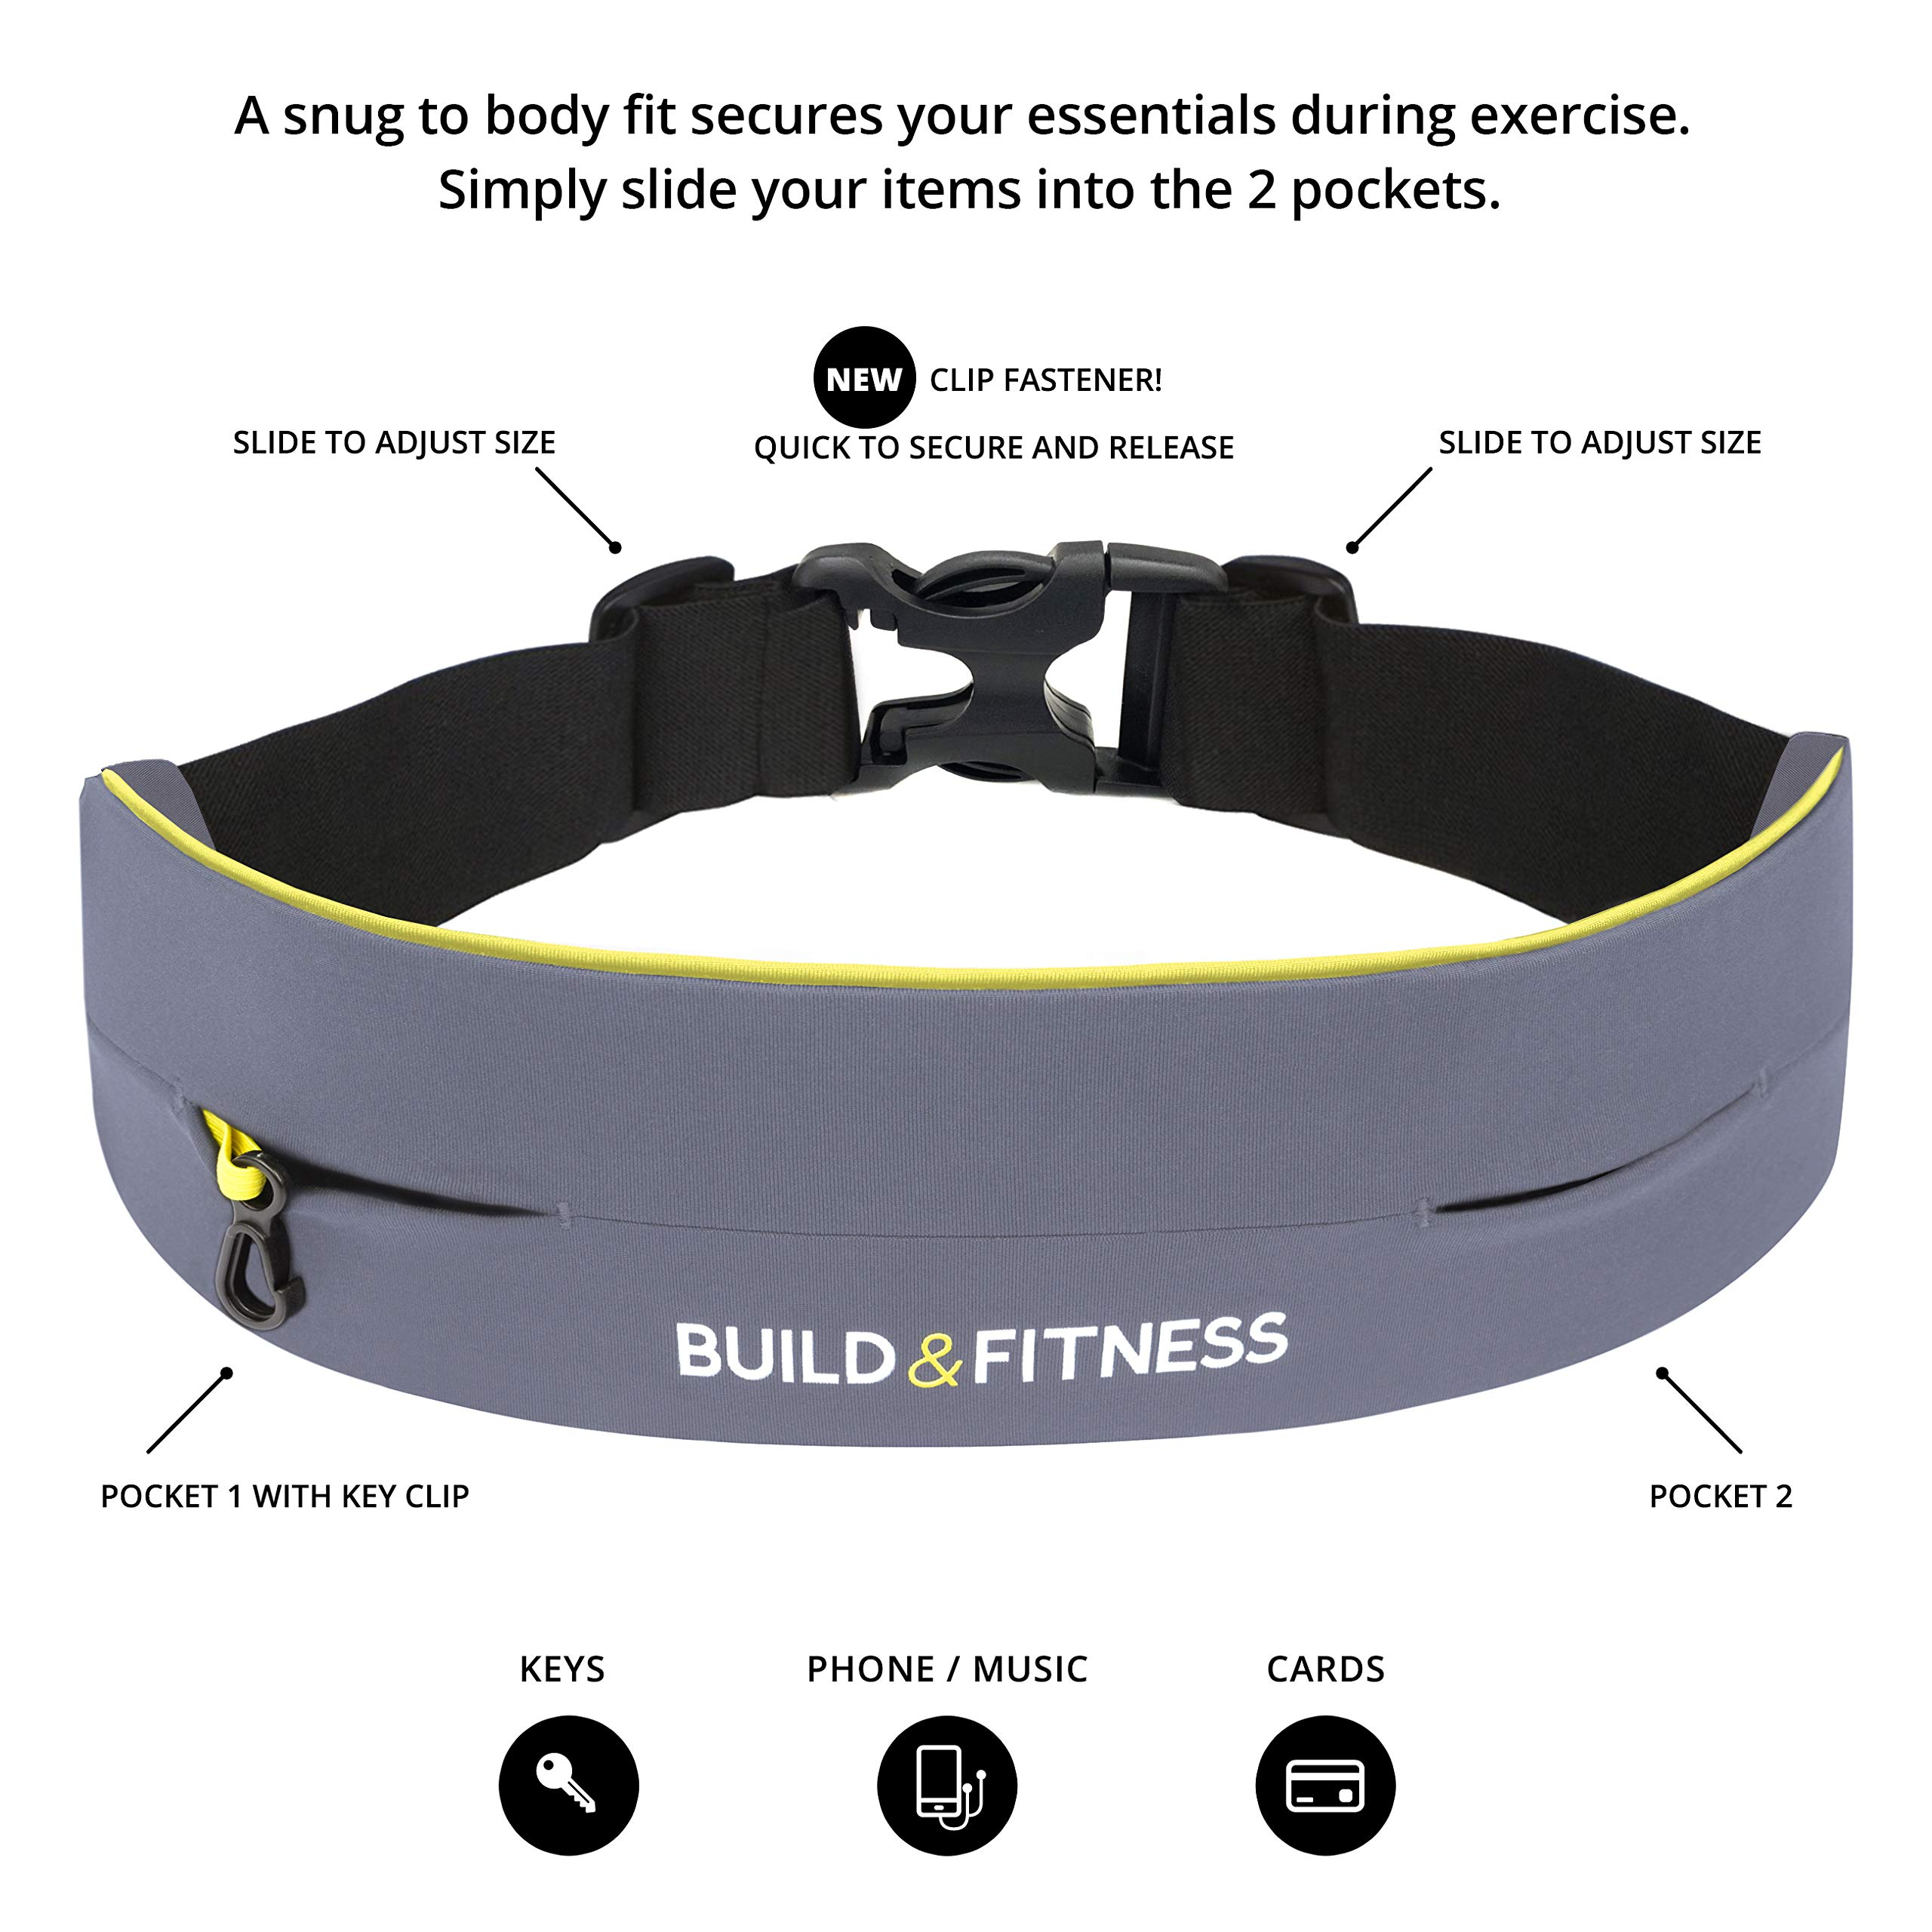 Build & Fitness Running Belt Waist Adjustable, Comfortable Slim with Key Clip - Fits Fuel Gel, iPhone 6,7,8plus,X, Samsung S7,S8,S9 - for Men, Women, Runners, Jogging, Gym, Yoga, Workout, Sports by Build & Fitness (Image #7)